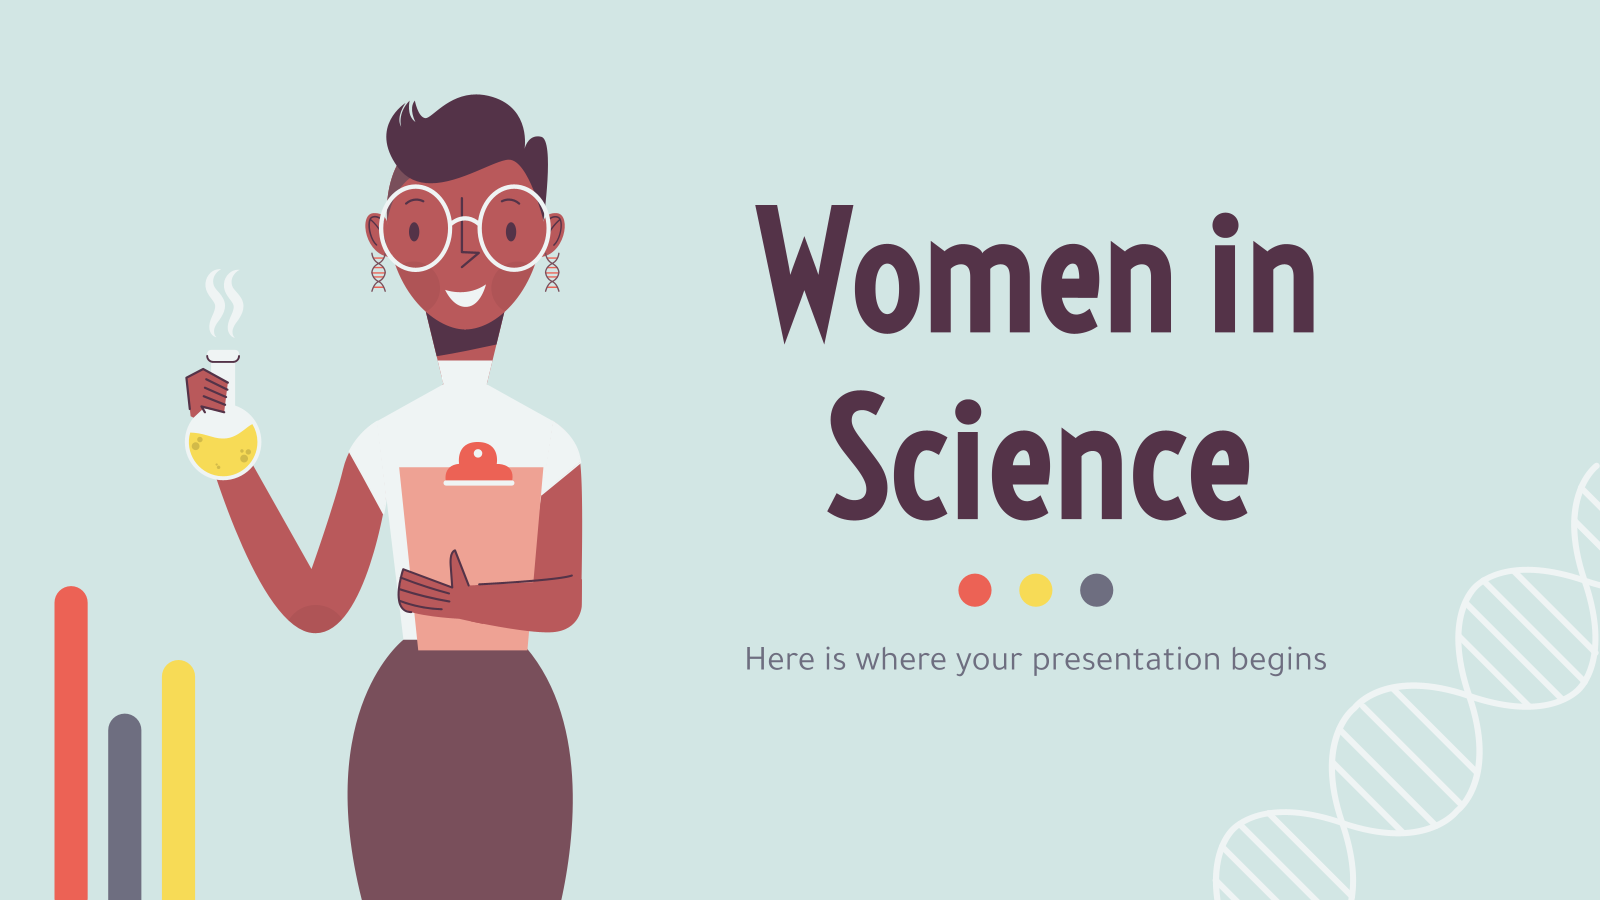 Women in Science presentation template